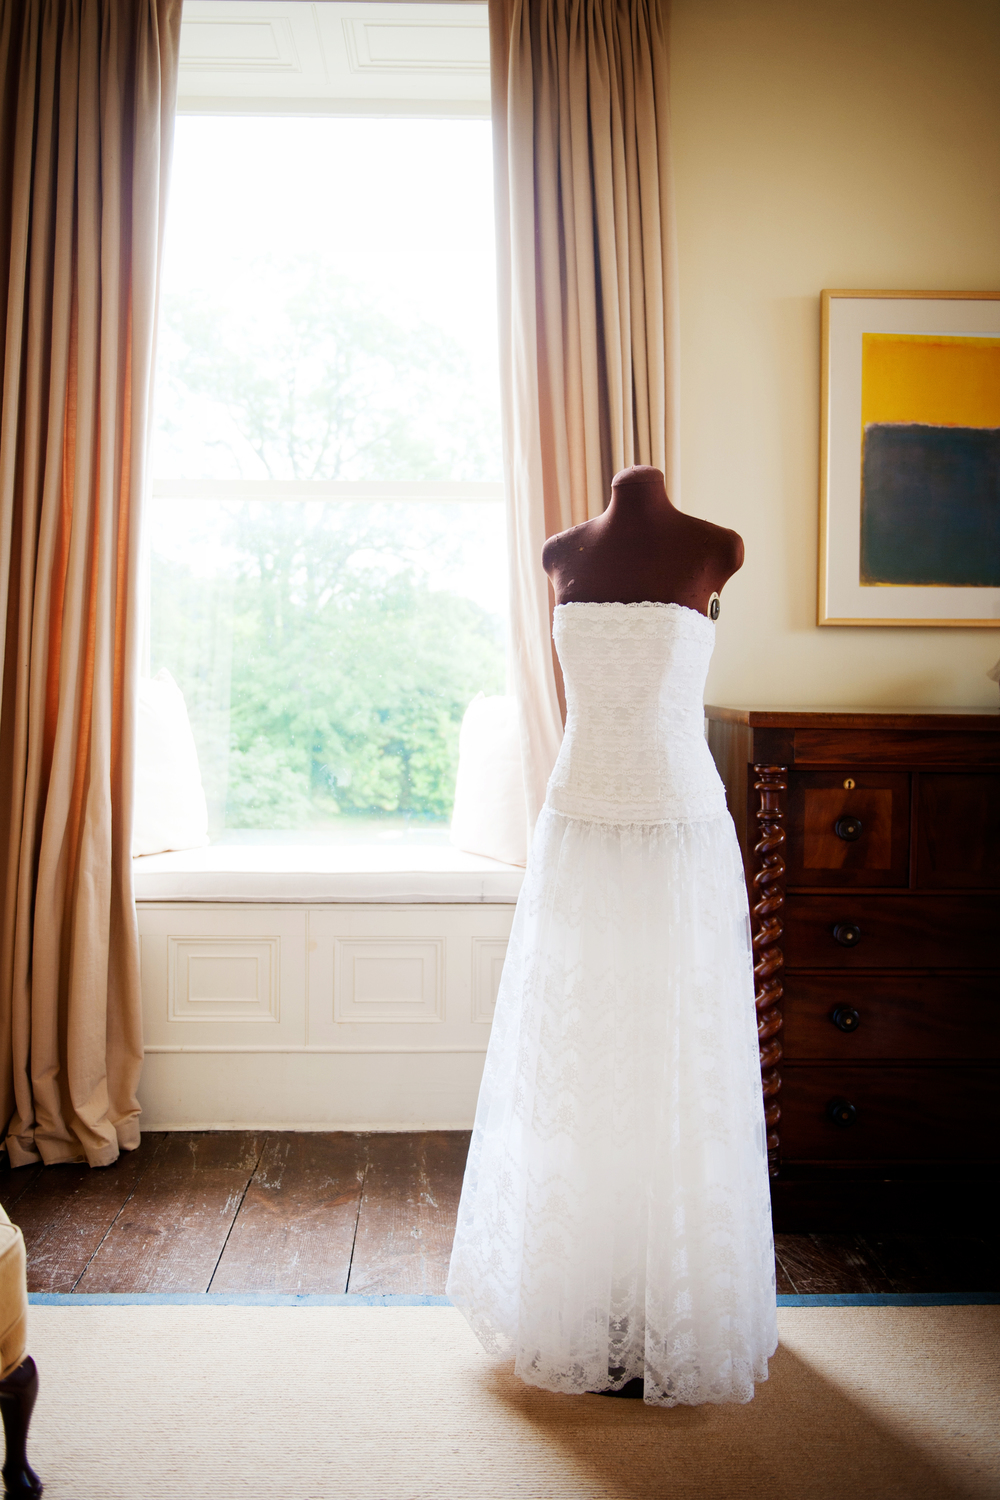 Vintage dress from Bella Bleu, Cork. Top / corset was crafted by Nell McCarthy, Cormac's grandmother. - Photography: Weddings by KARA   © - Wedding Location: Kilshane House, Tipperary, Ireland